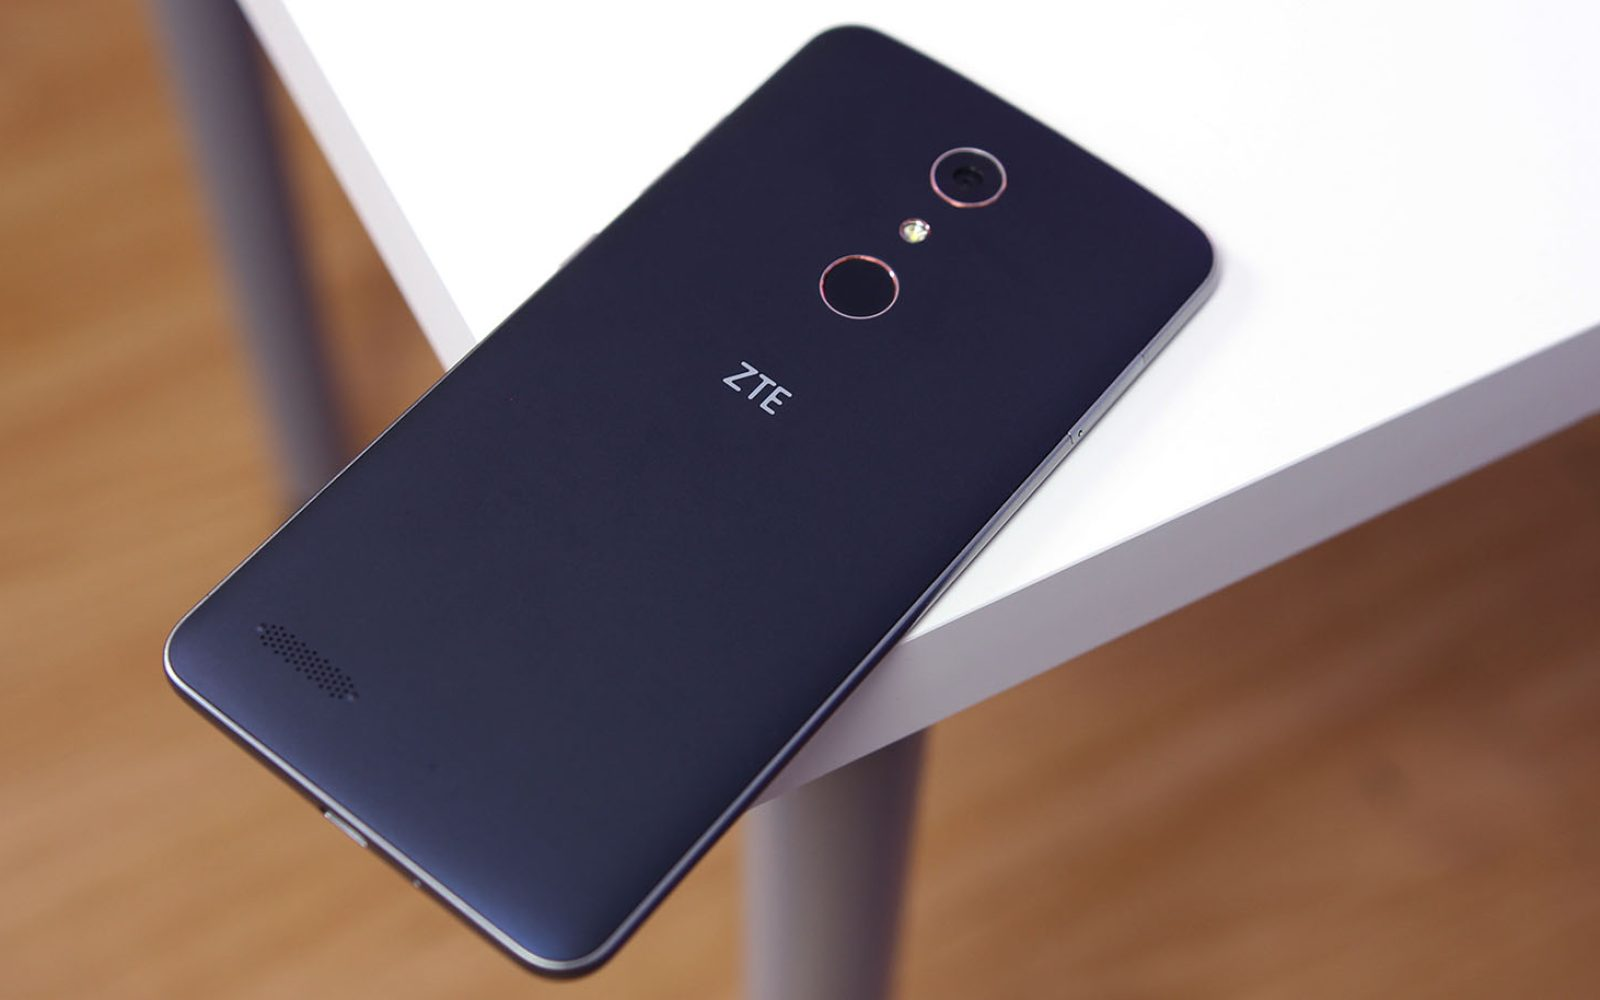 Review: ZTE ZMax Pro is an amazing phone for $99, but with one fatal